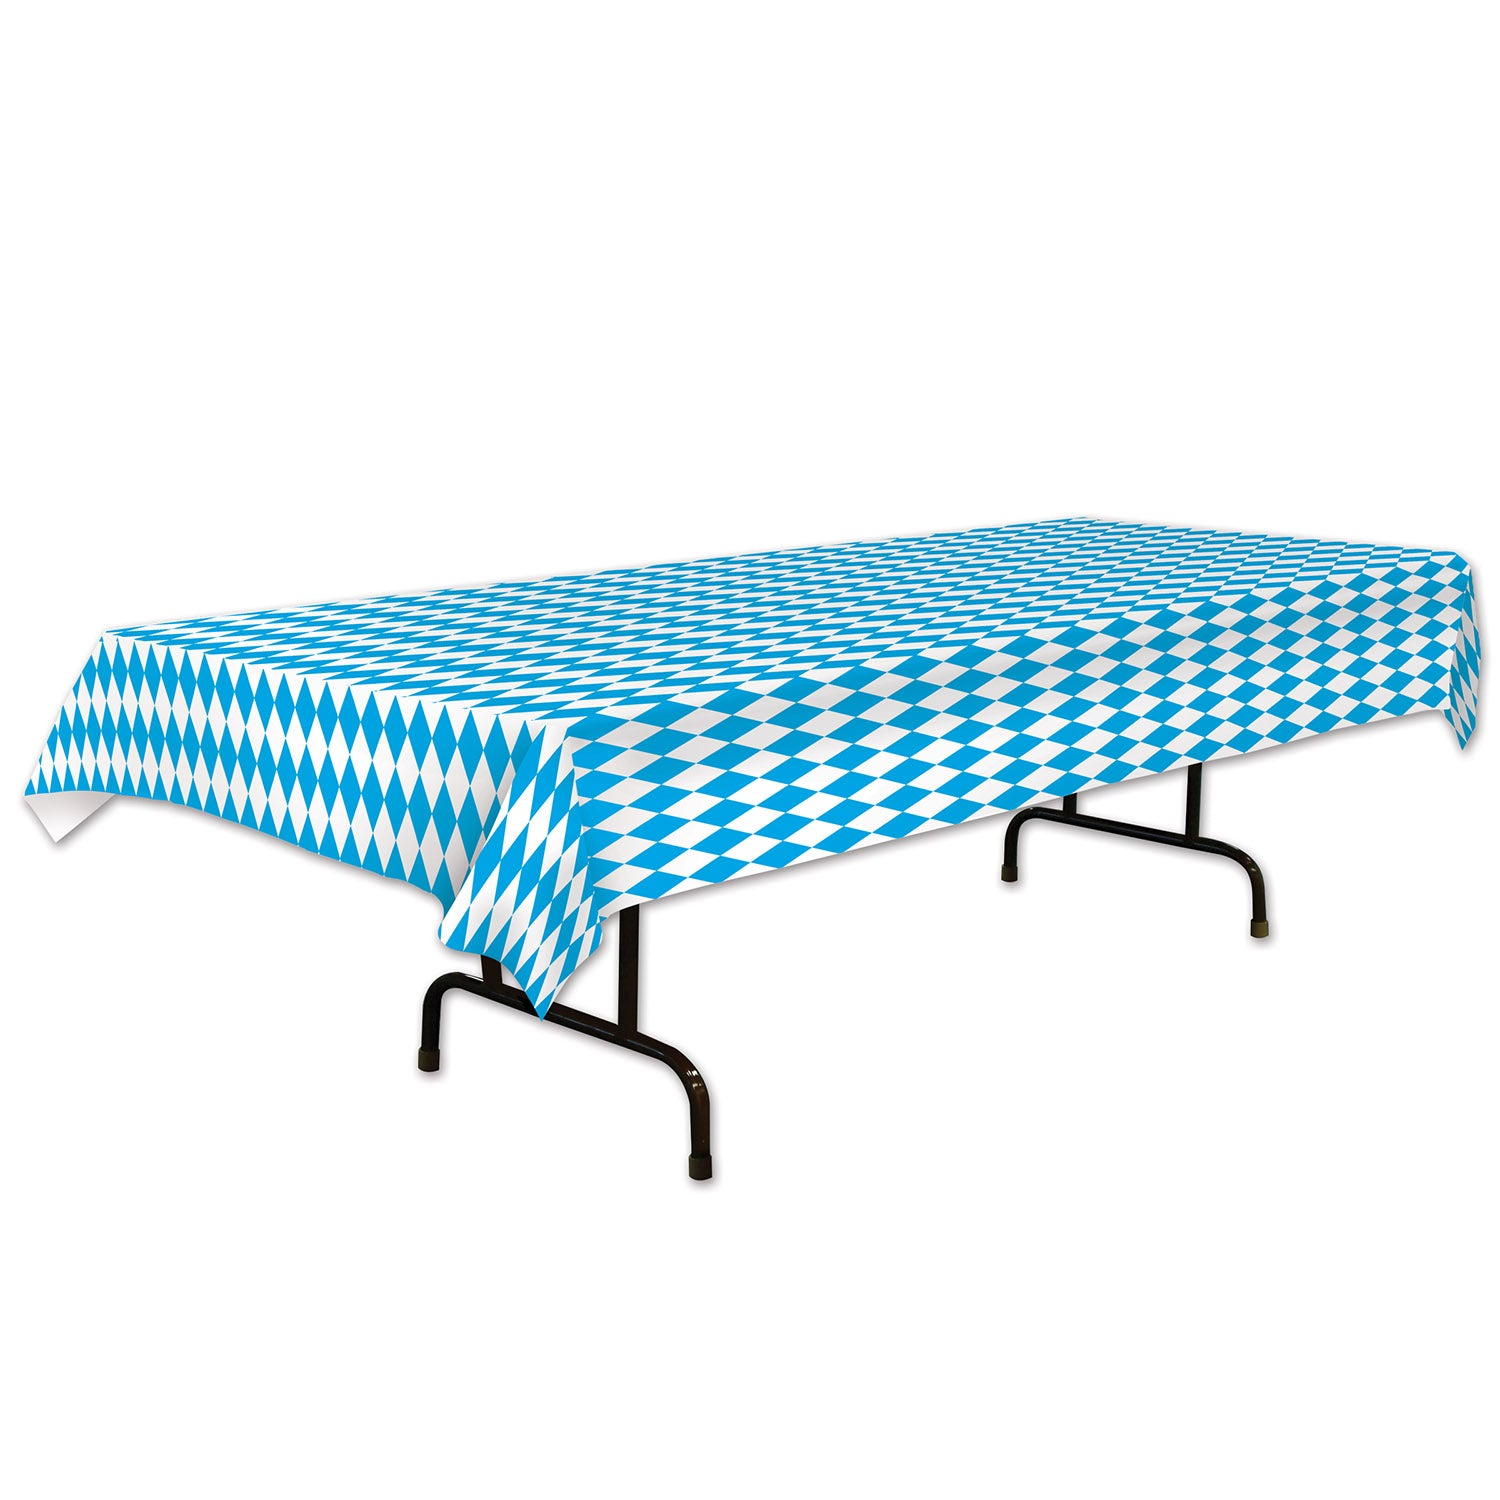 Oktoberfest Tablecover by Beistle - Oktoberfest Theme Decorations